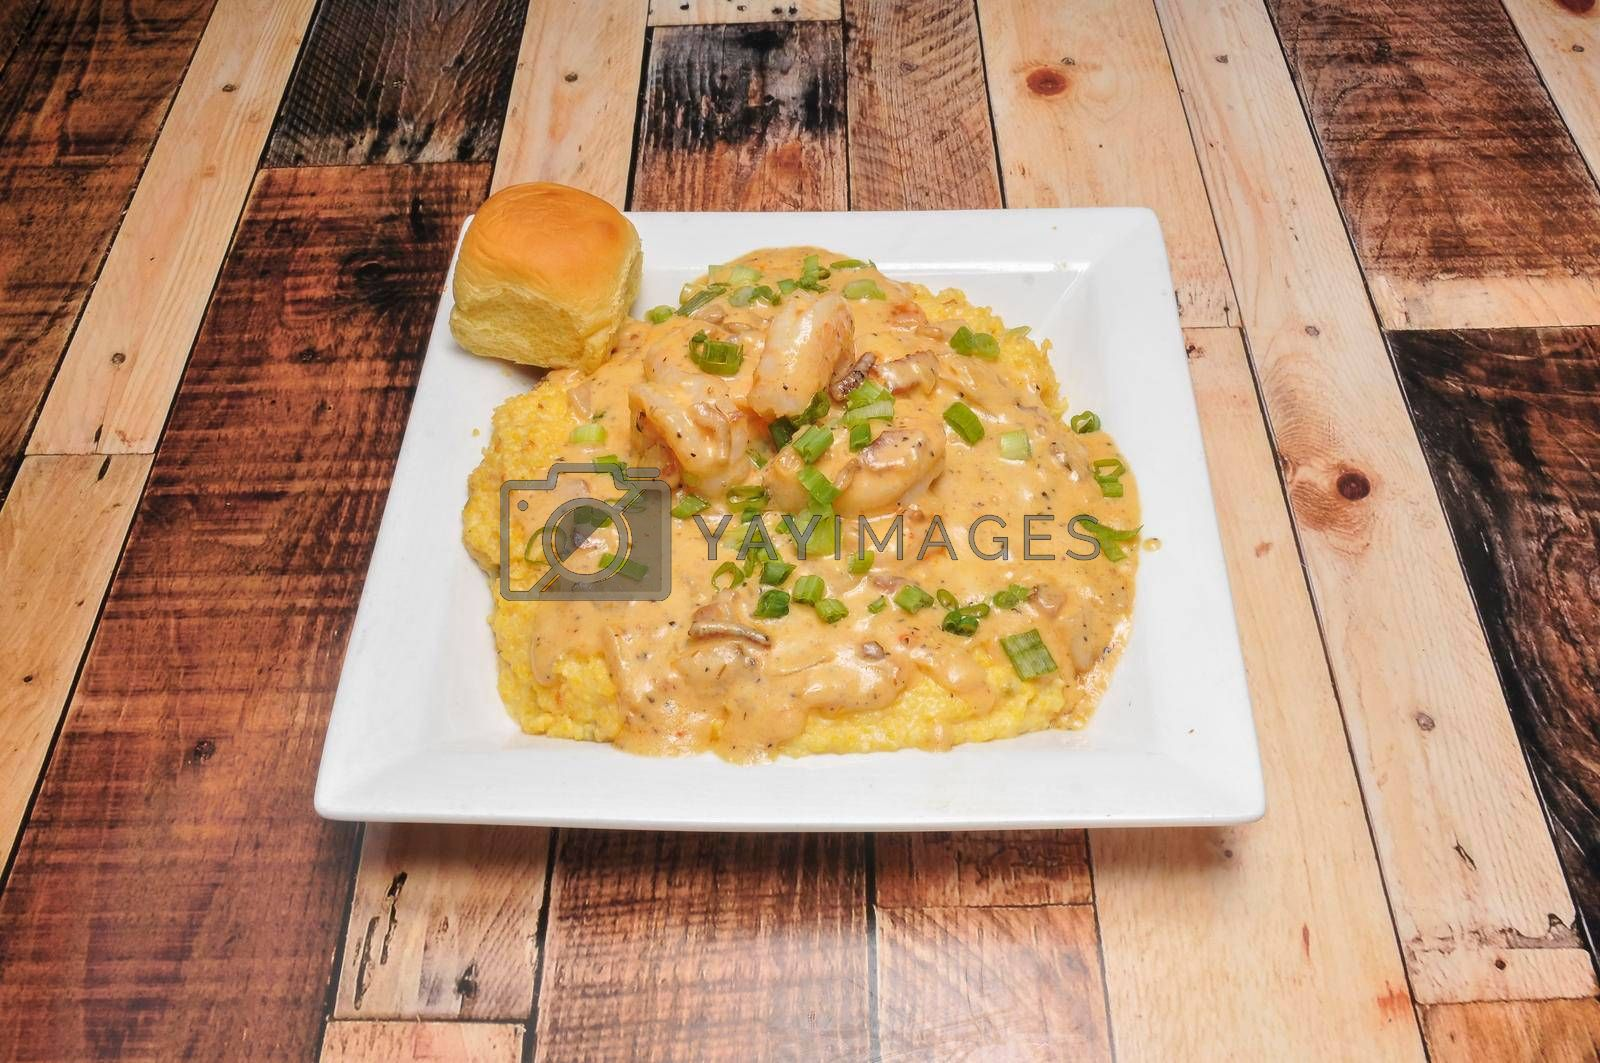 Delicious American cuisine known as shrimp and grits